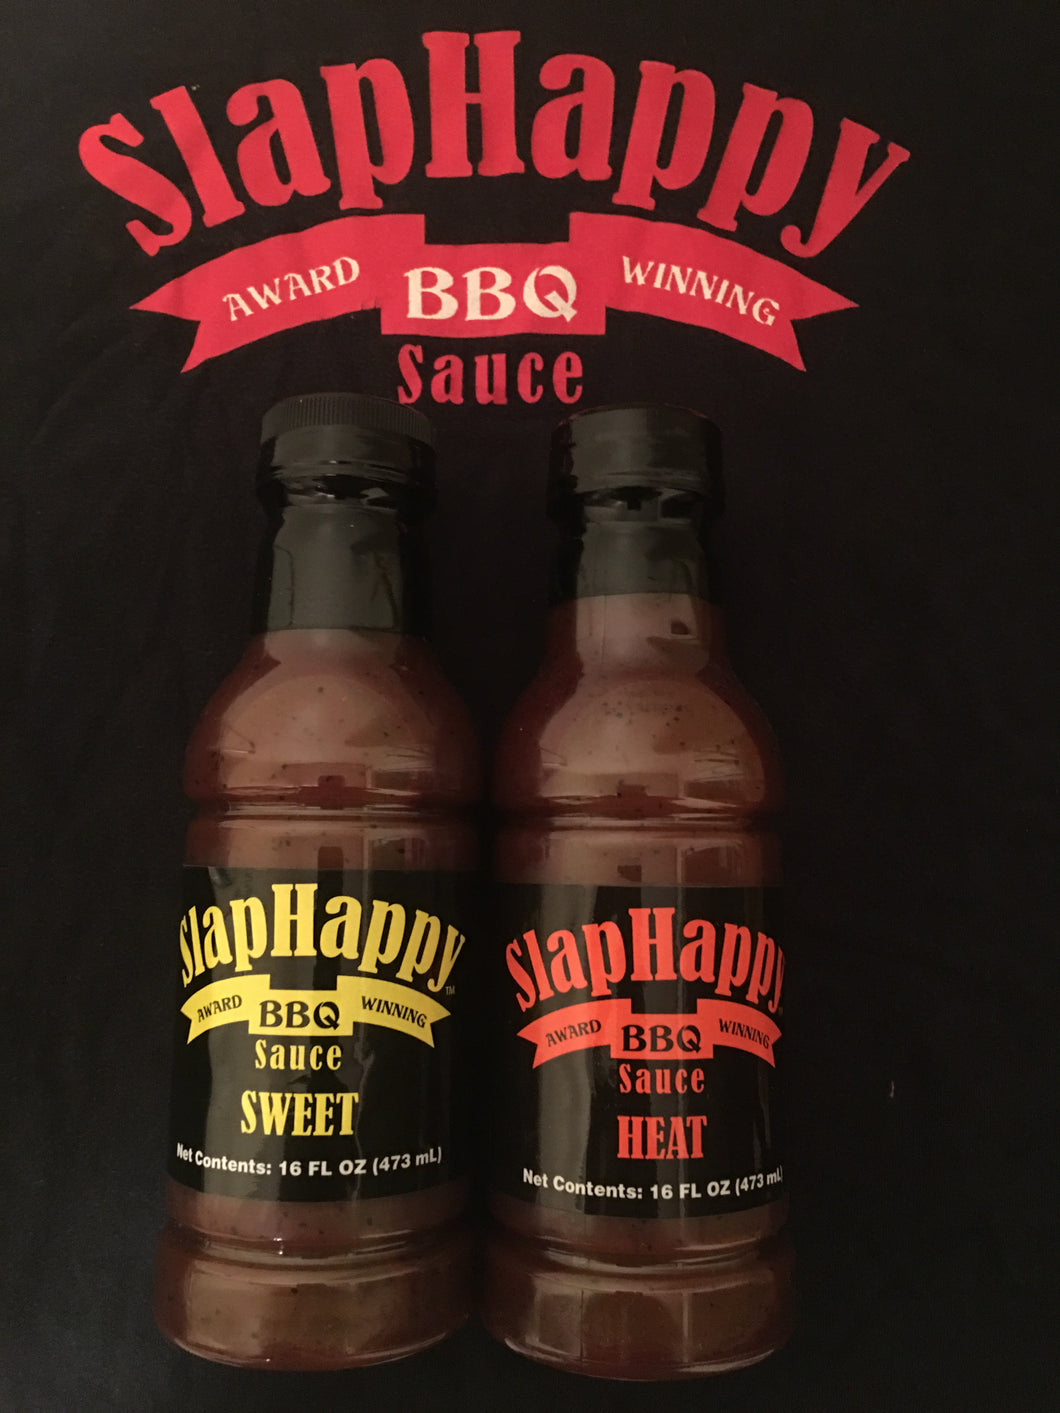 SlapHappy BBQ two bottle package including Sweet & Heat BBQ sauces